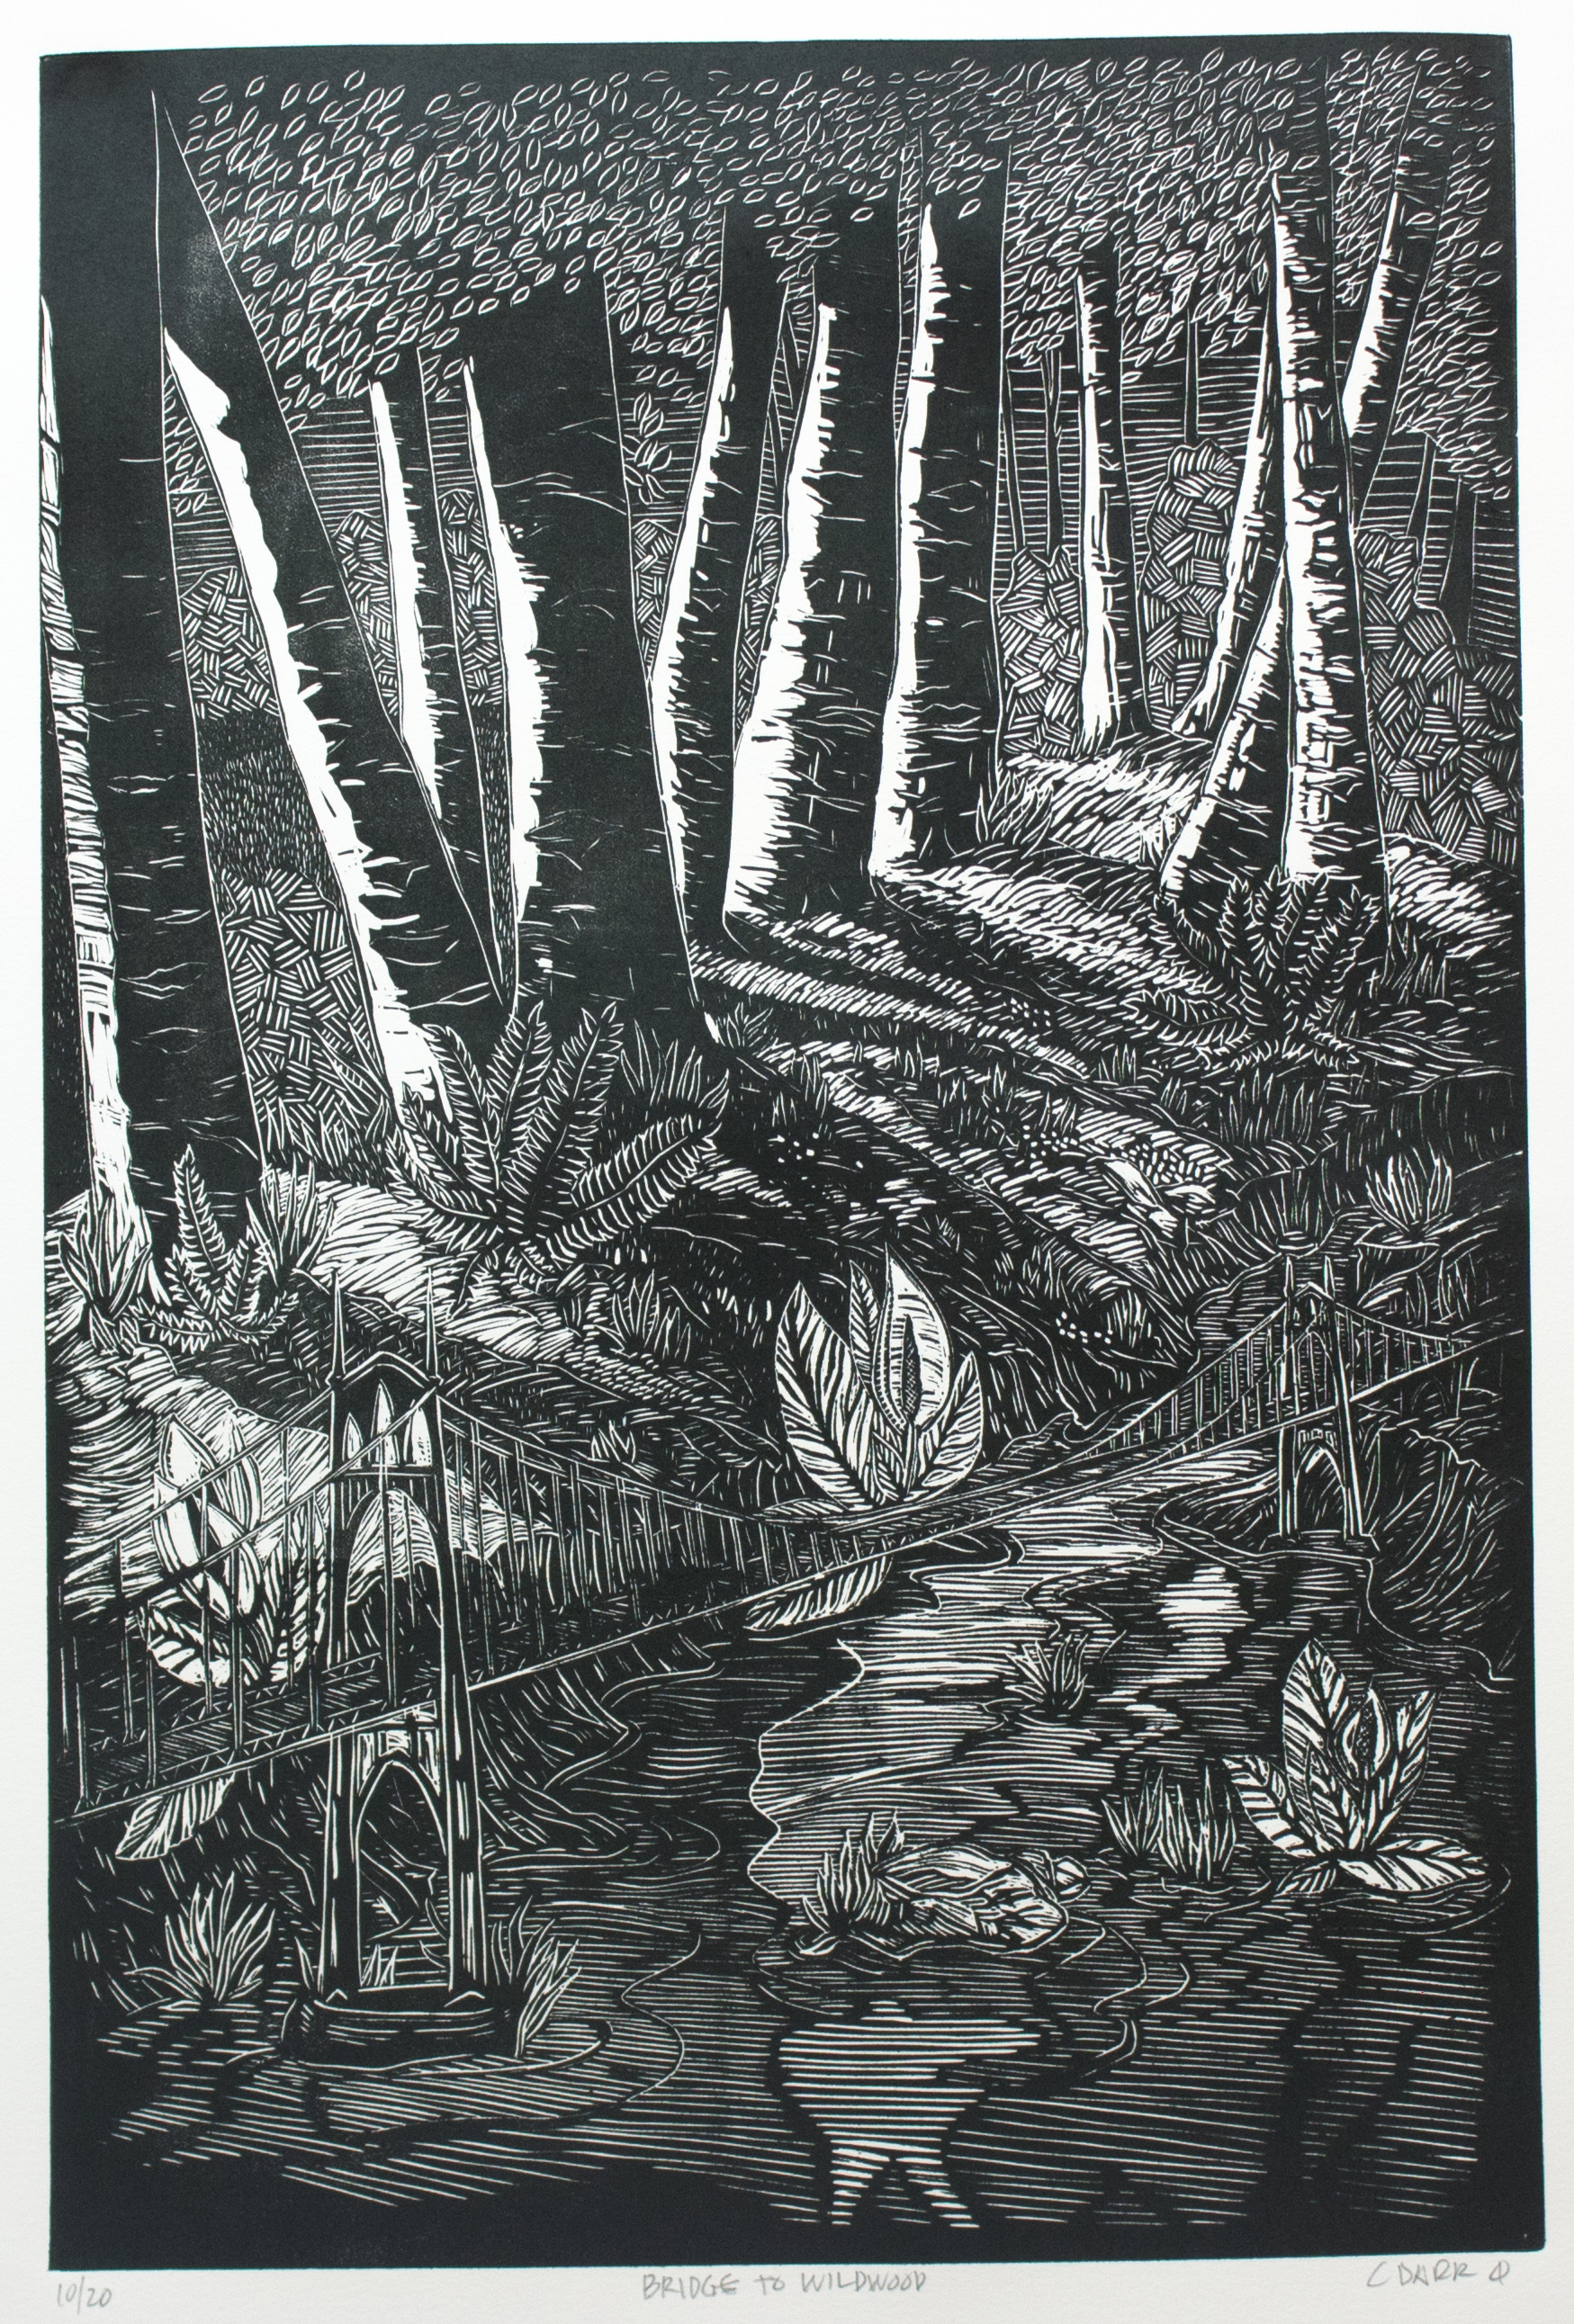 """BRIDGE TO WILDWOOD"" linoleum print"